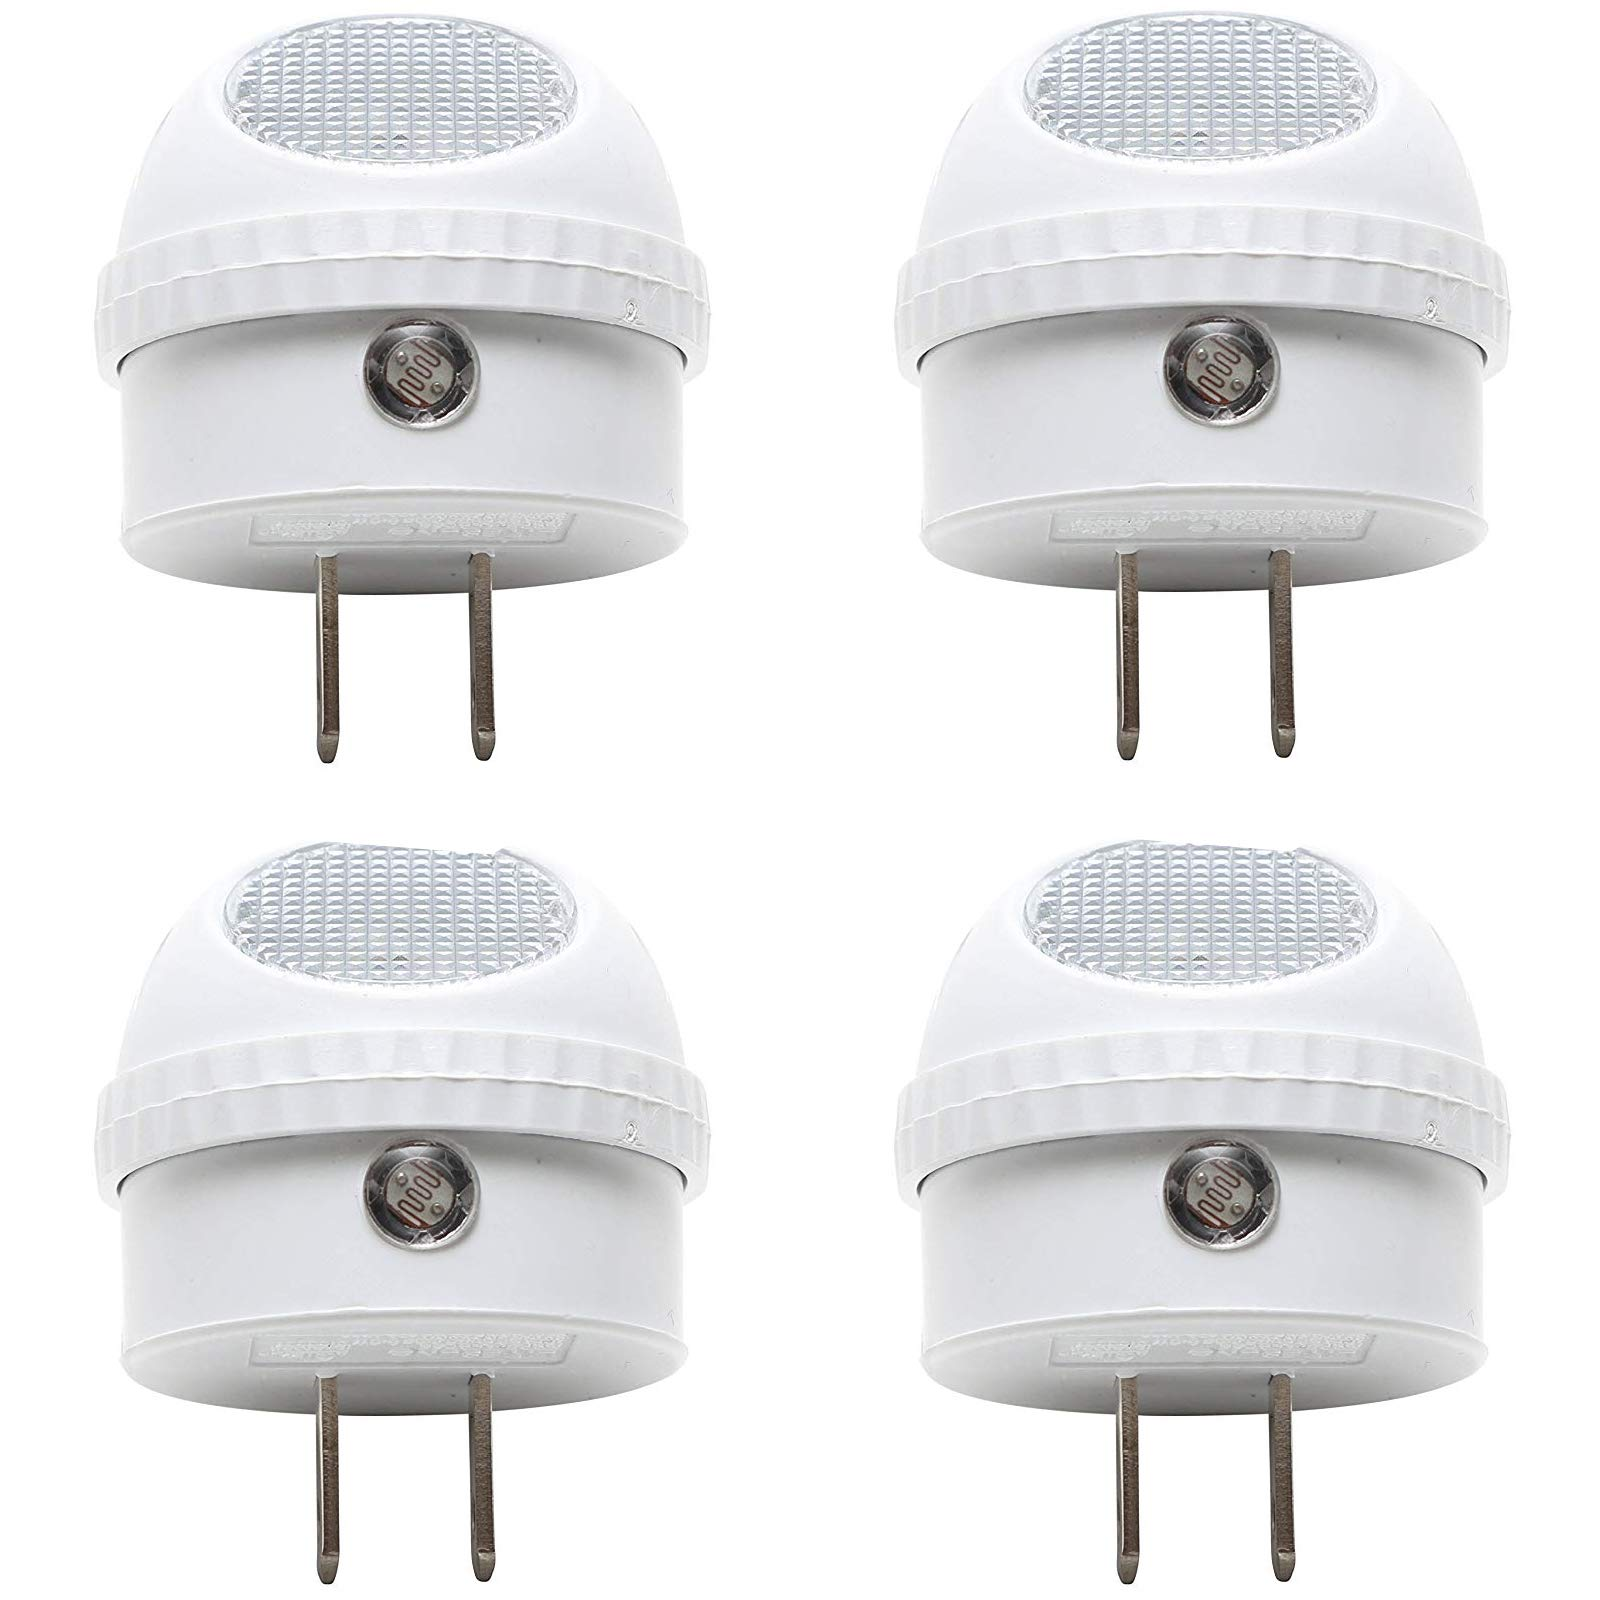 ClearMax 4 Pack LED Night Light with Built-in Dusk to Dawn Sensor - Soft White - Type A Plug - 0.3W AC 125V 2700K … by ClearMax